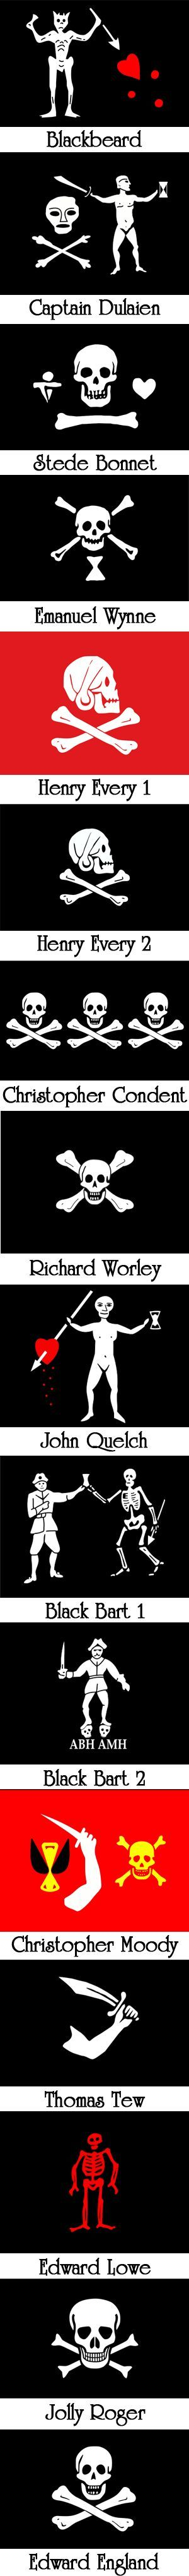 Who knew? I thought every pirate used the Jolly Roger.